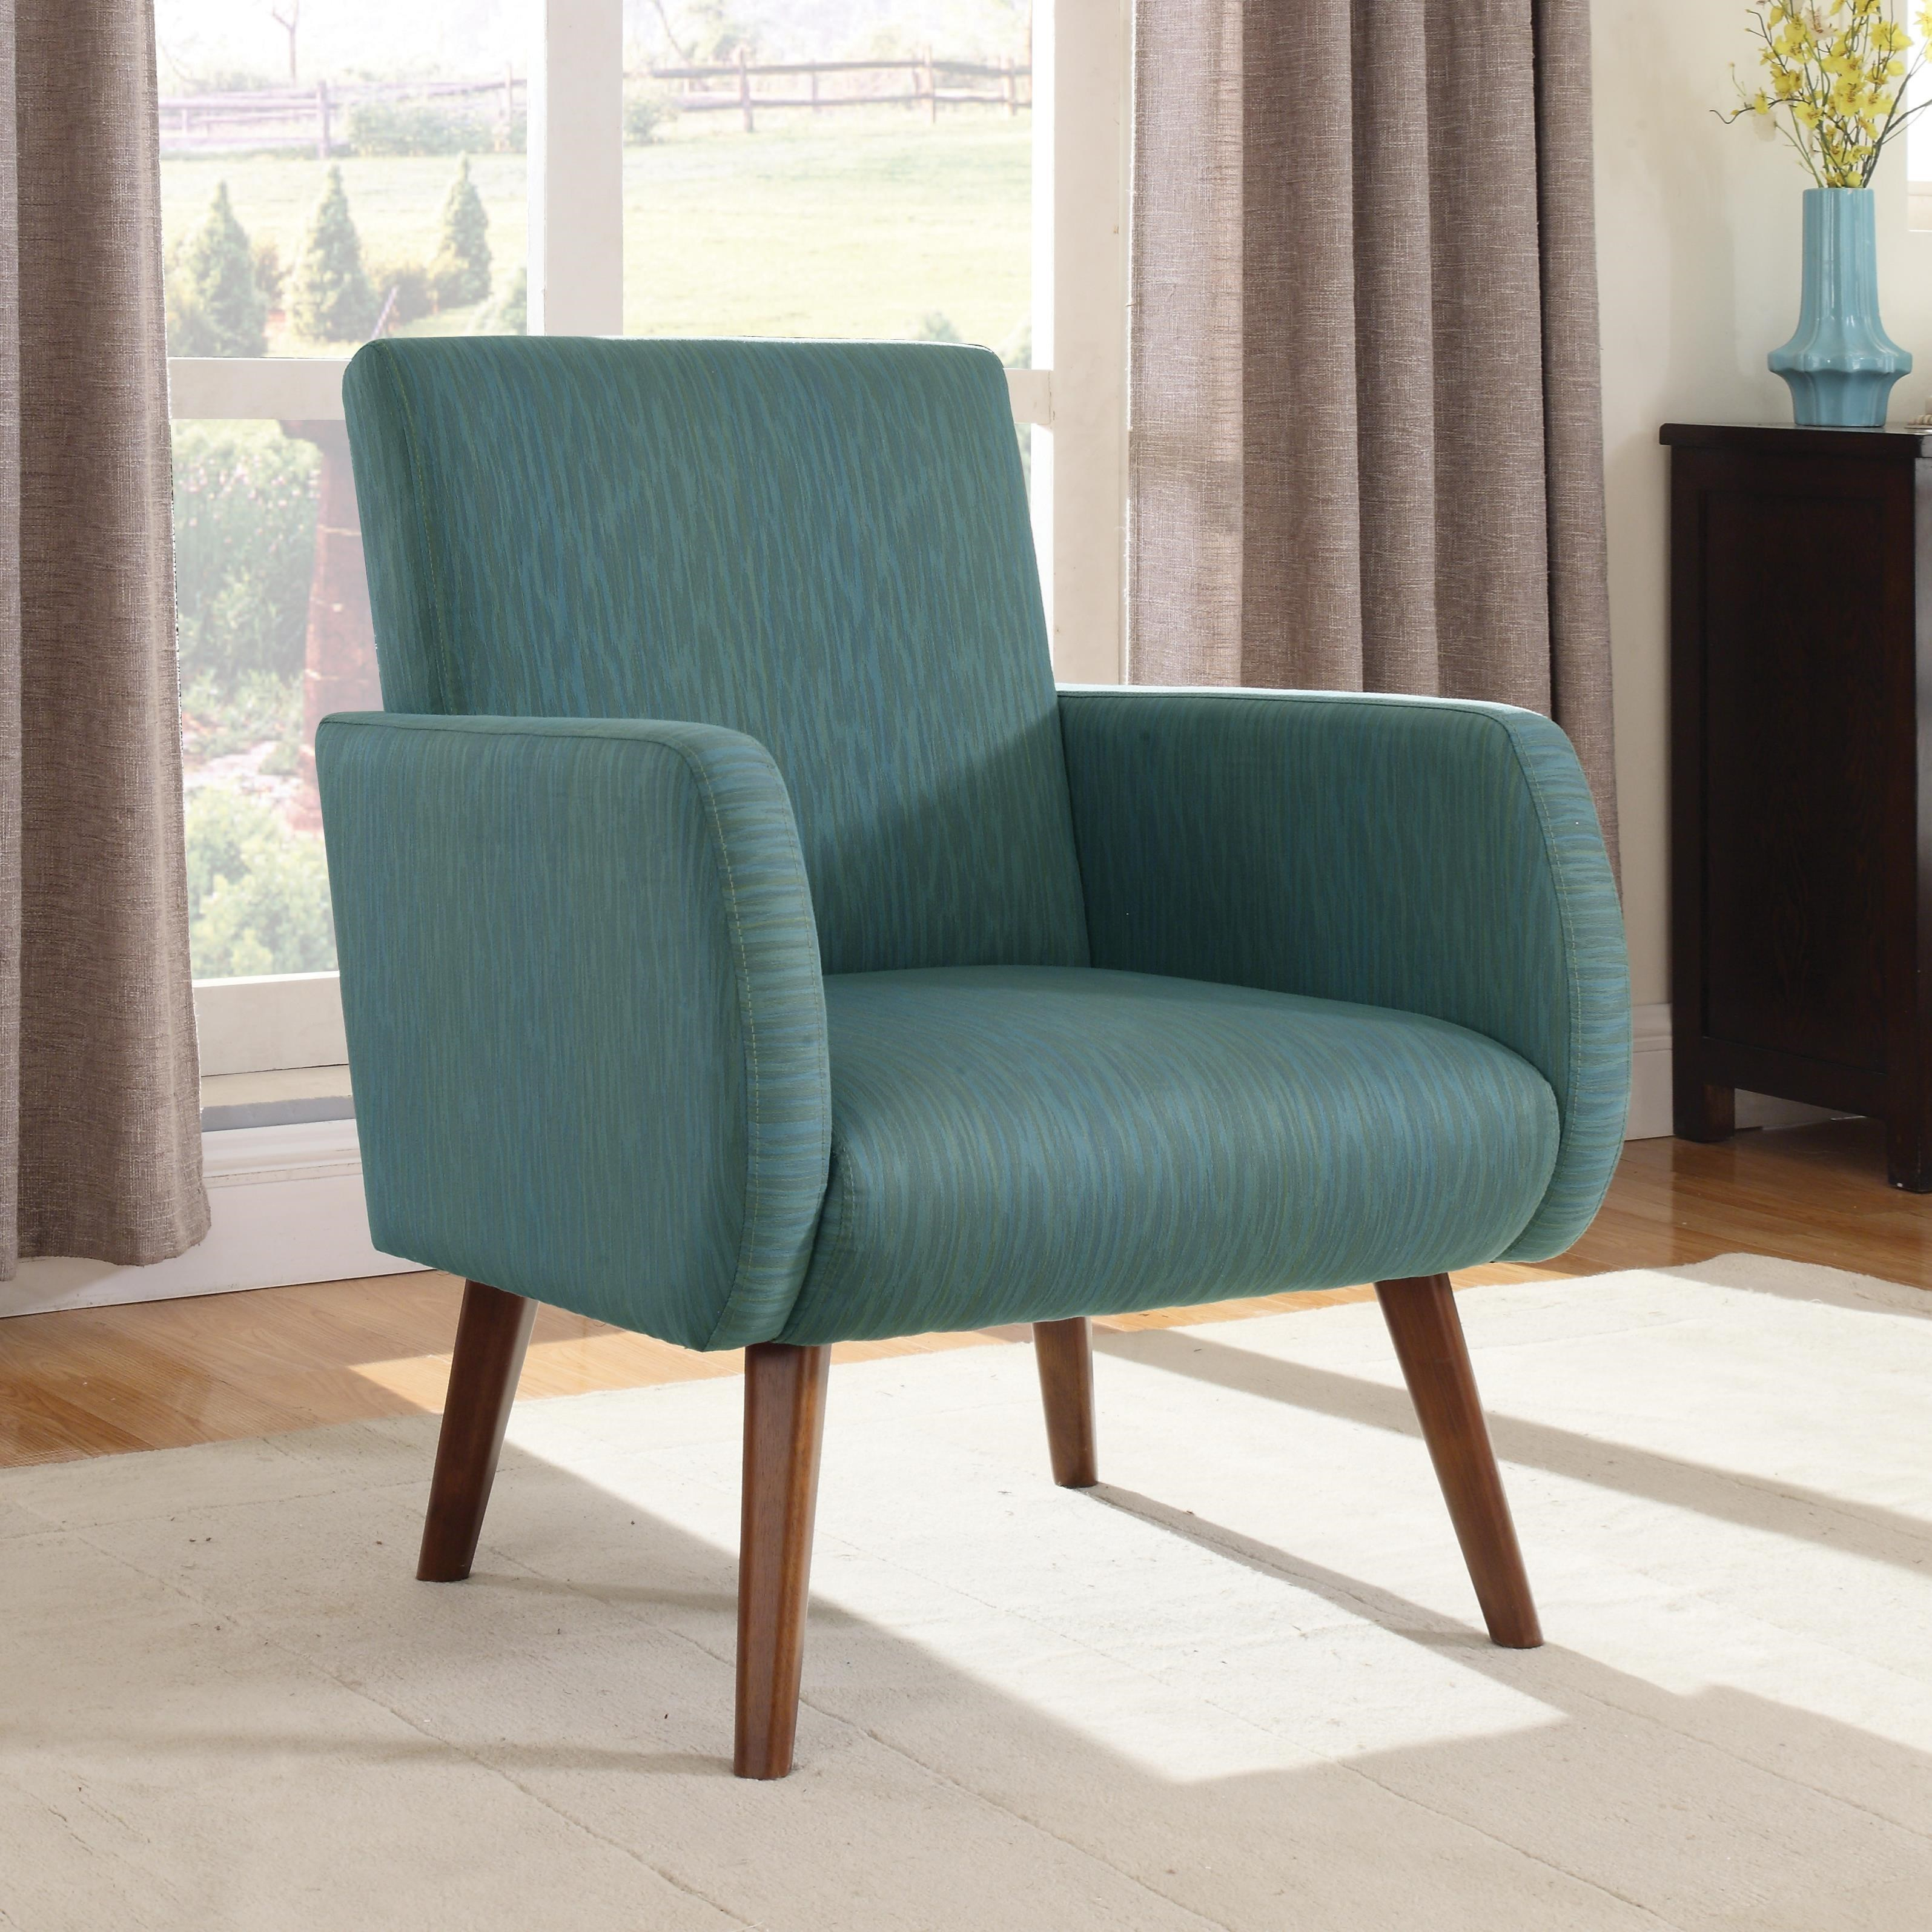 Coaster Accent Seating Mid Century Modern Accent Chair   Coaster Fine  Furniture